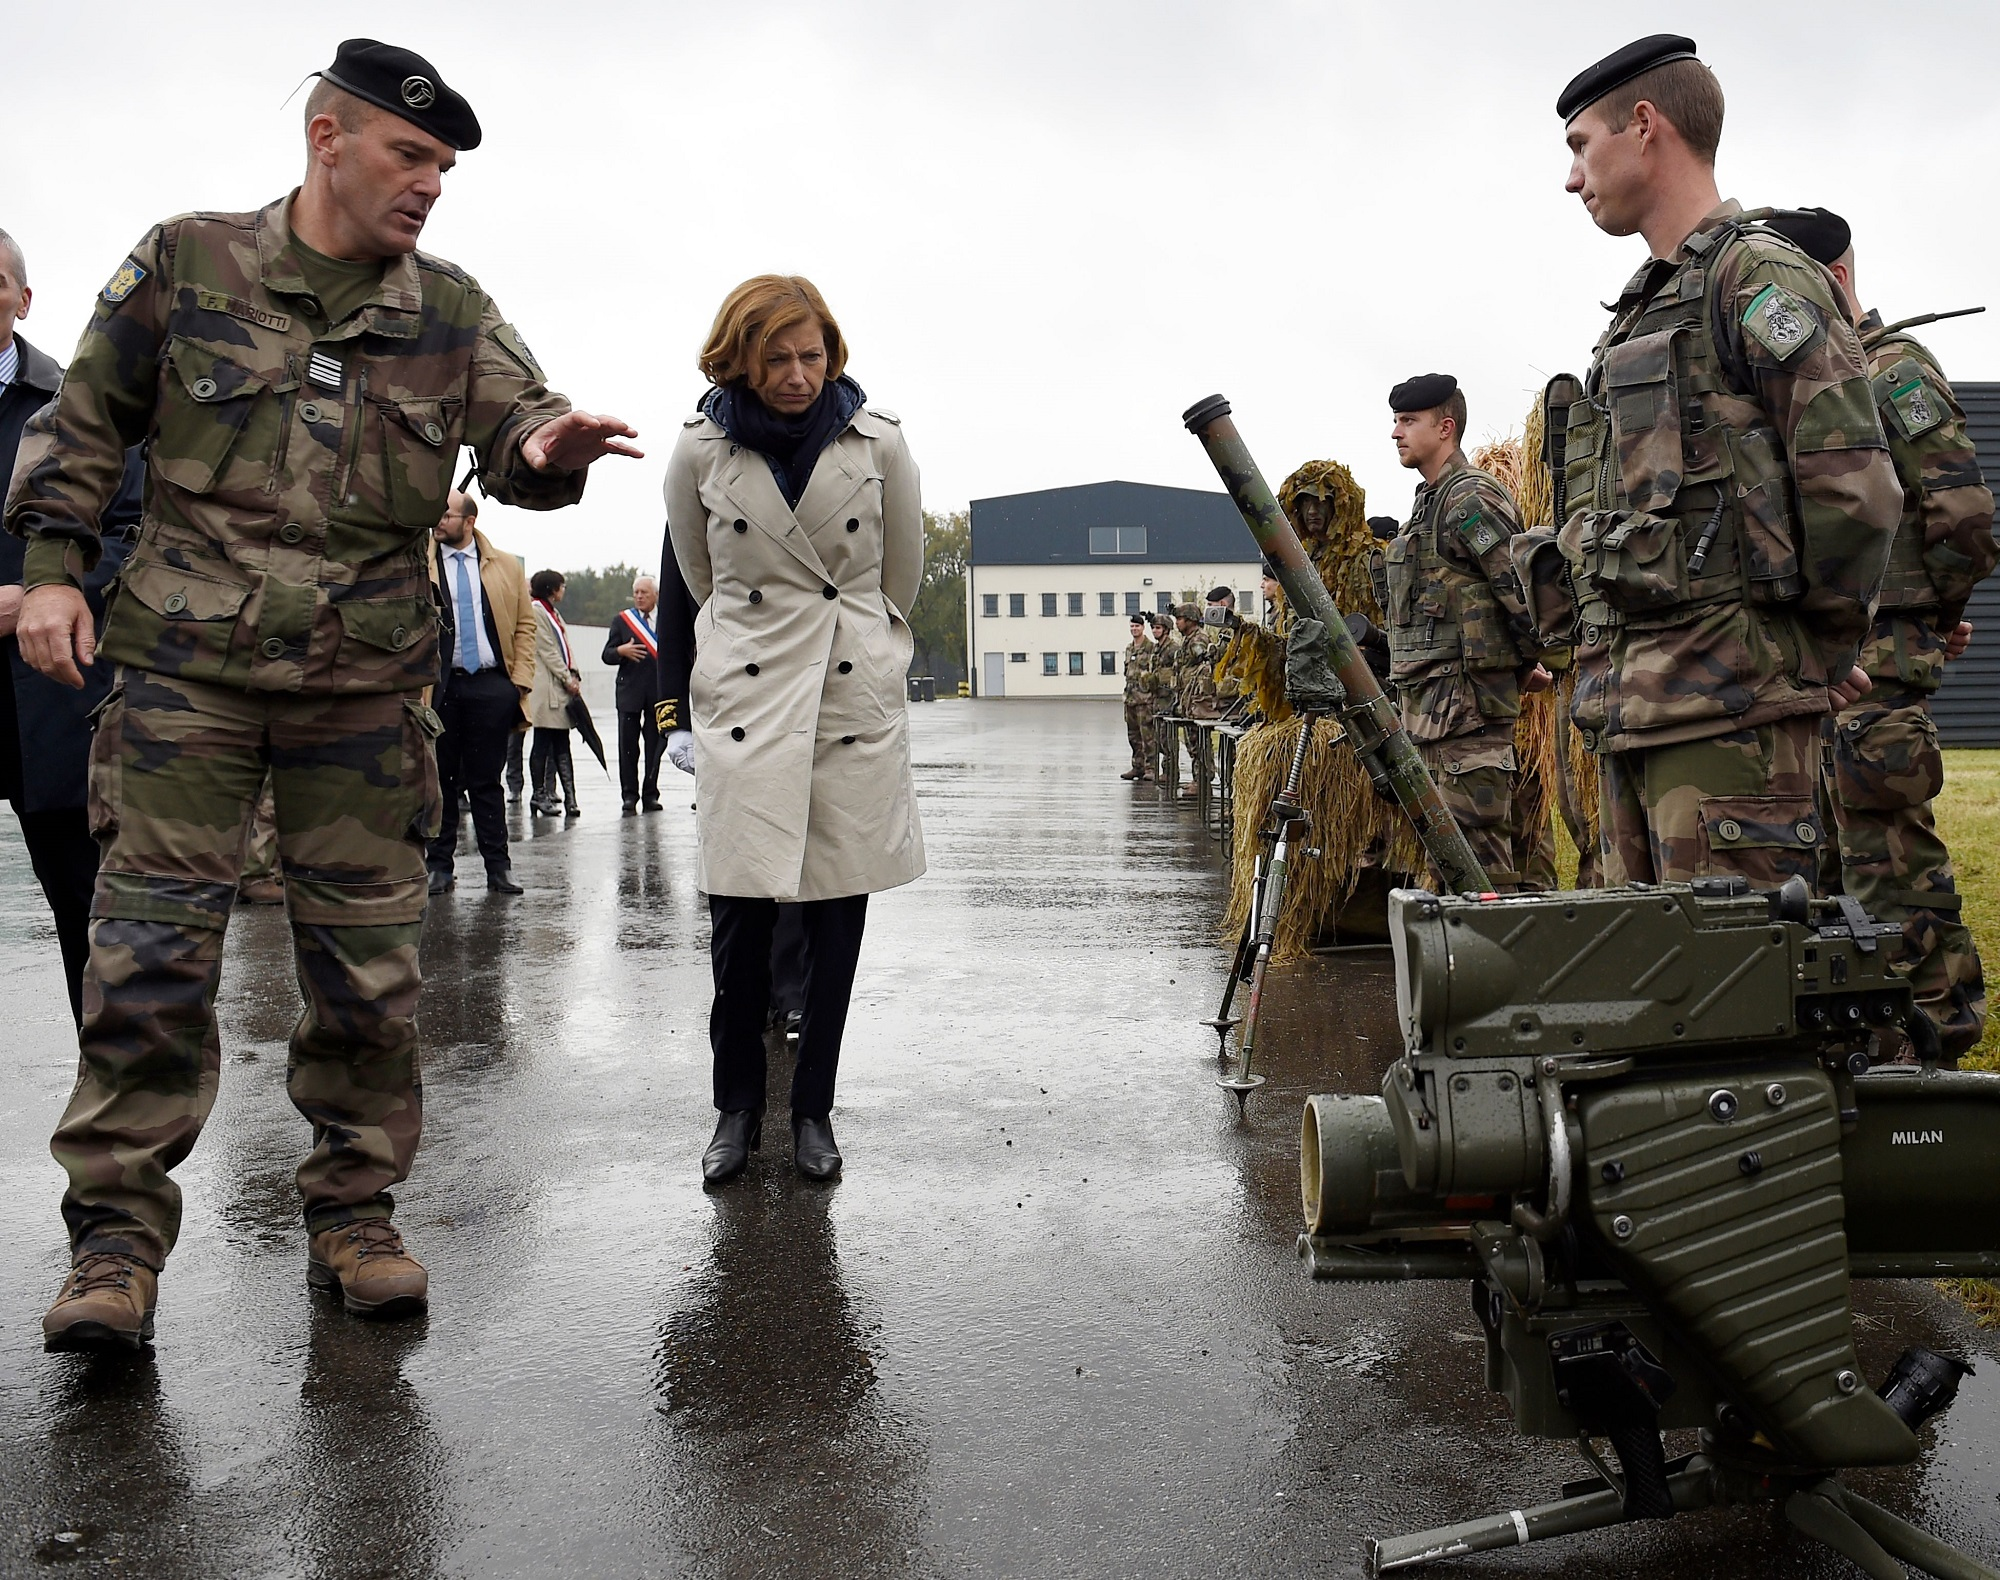 French defense minister: European defense industry needs export to survive